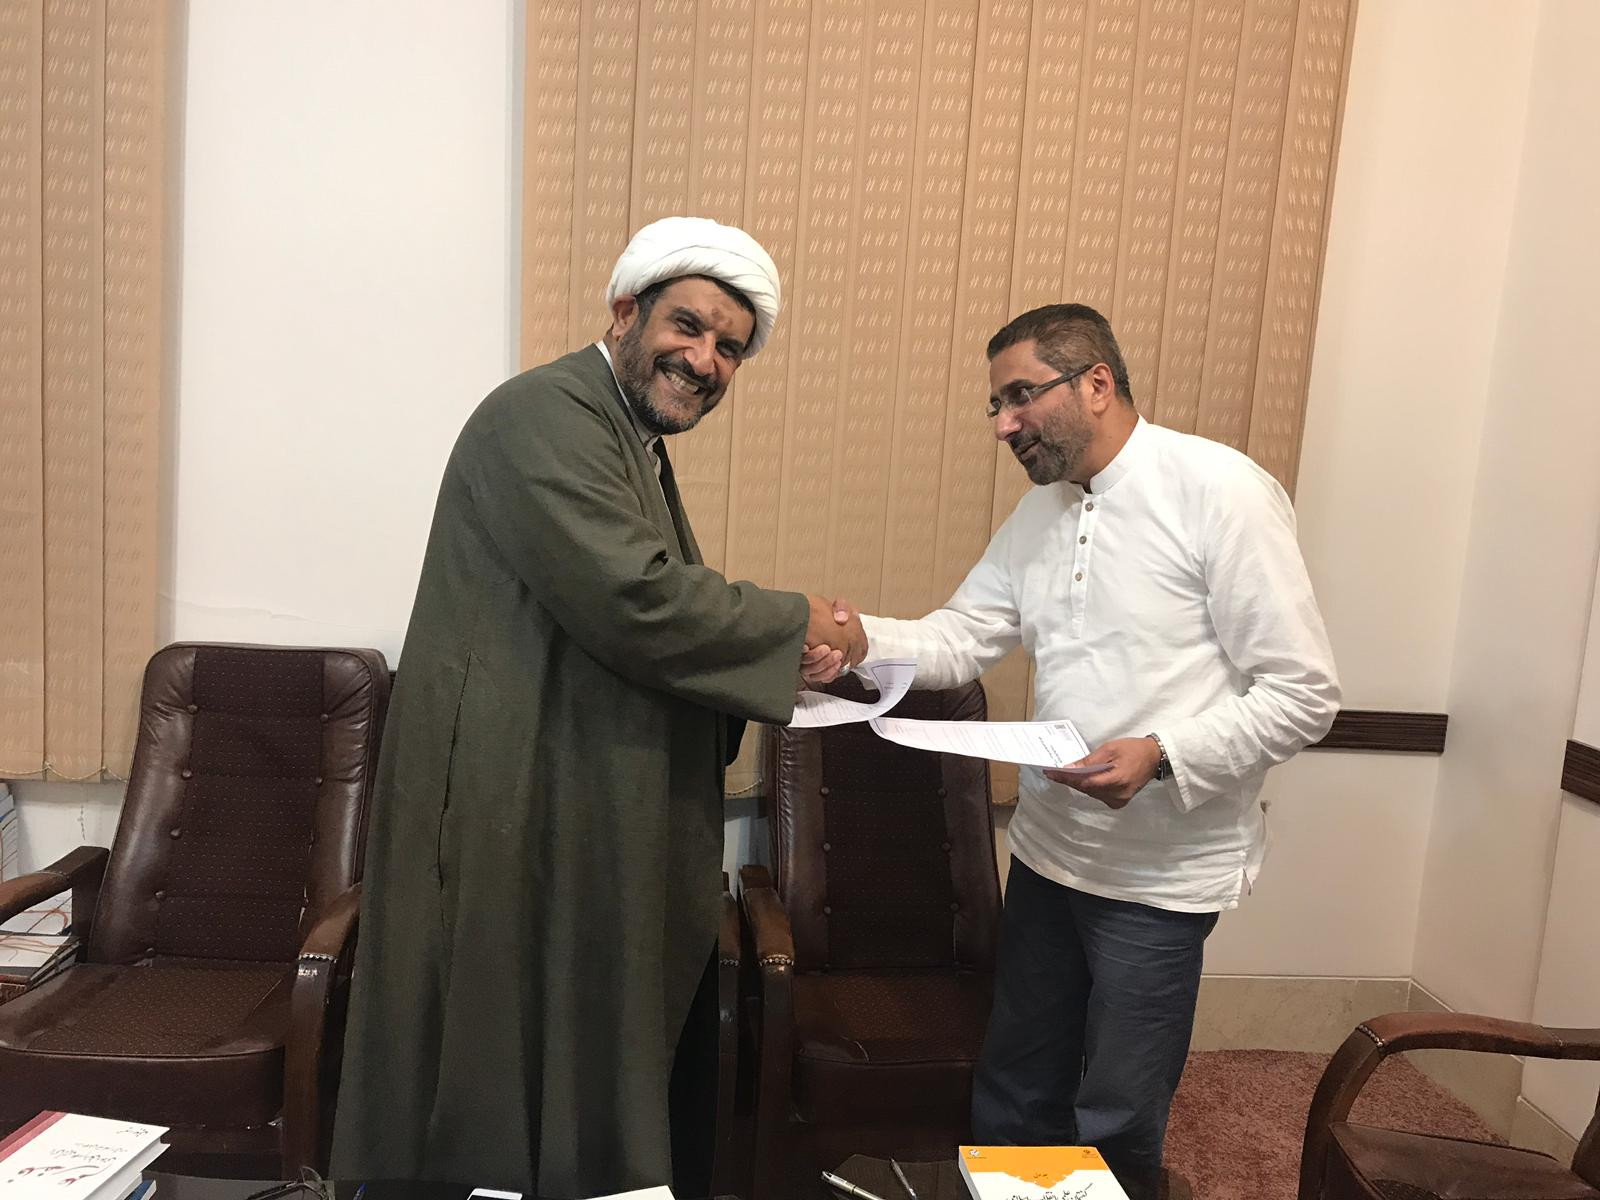 Al-Mahdi Institute and Secretariat for the Assembly of Religious Seminaries (Hawza Ilmiyya, Qom) to Collaborate on Scholarly Research Activities